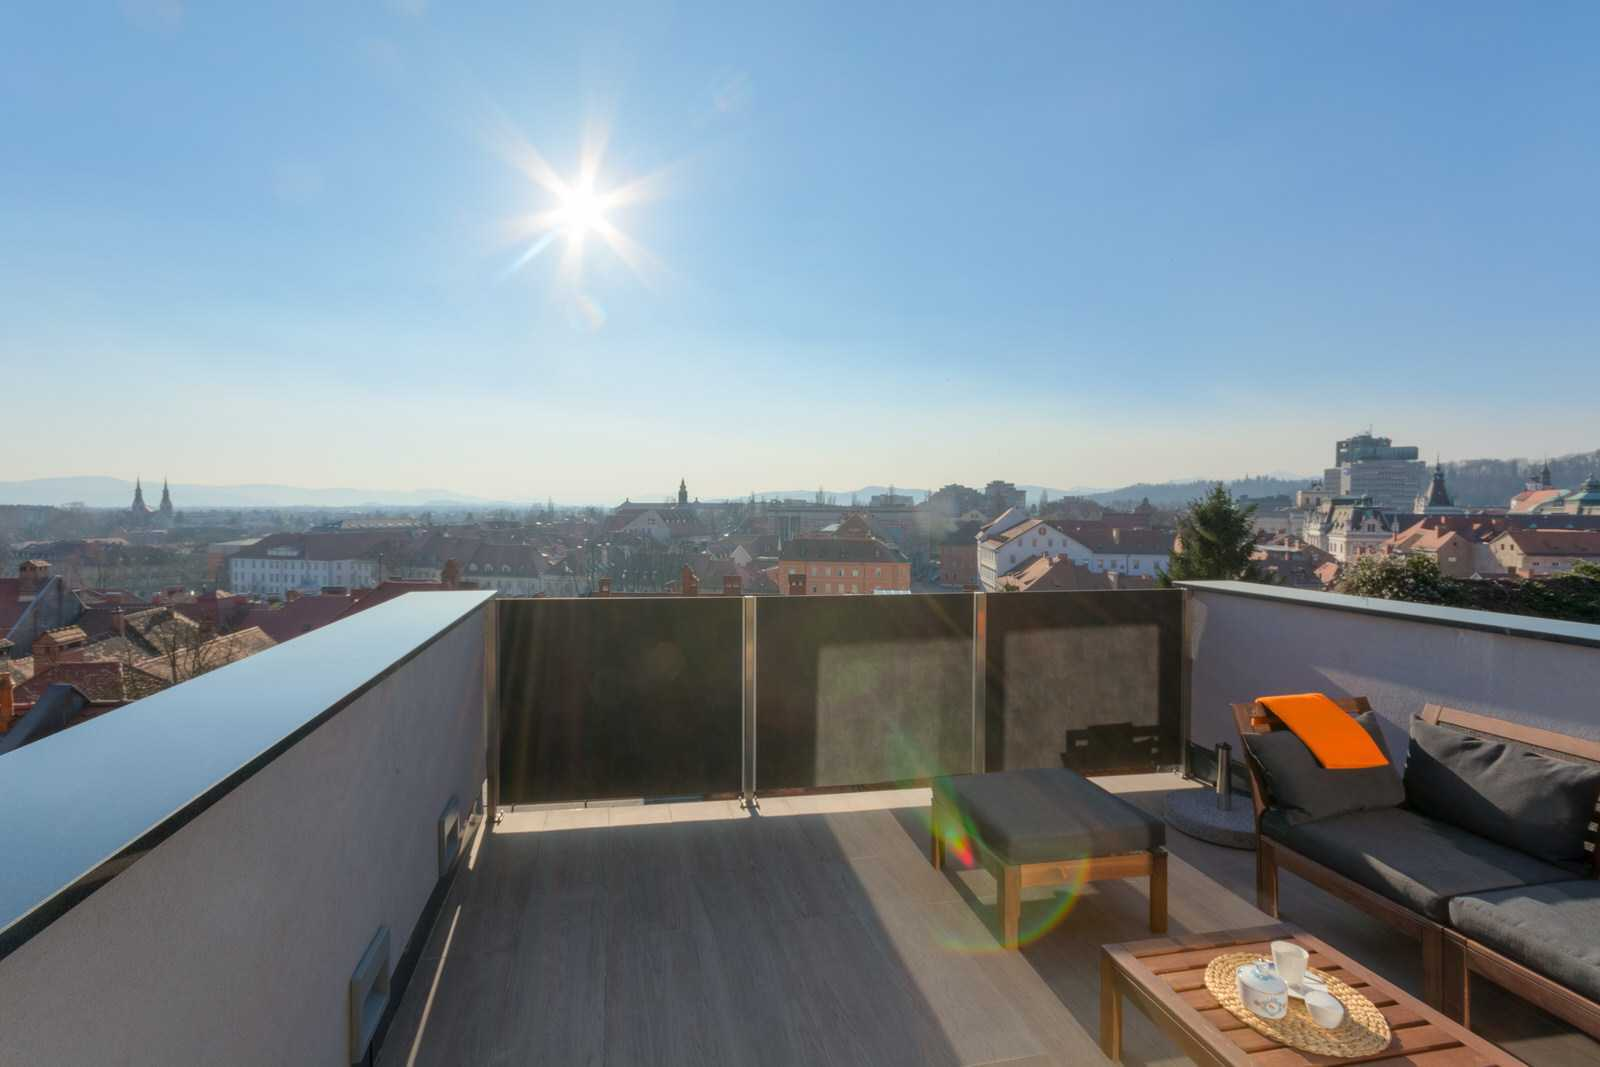 Watching the sun set over the city from the comfort of your own terrace is a special experience.